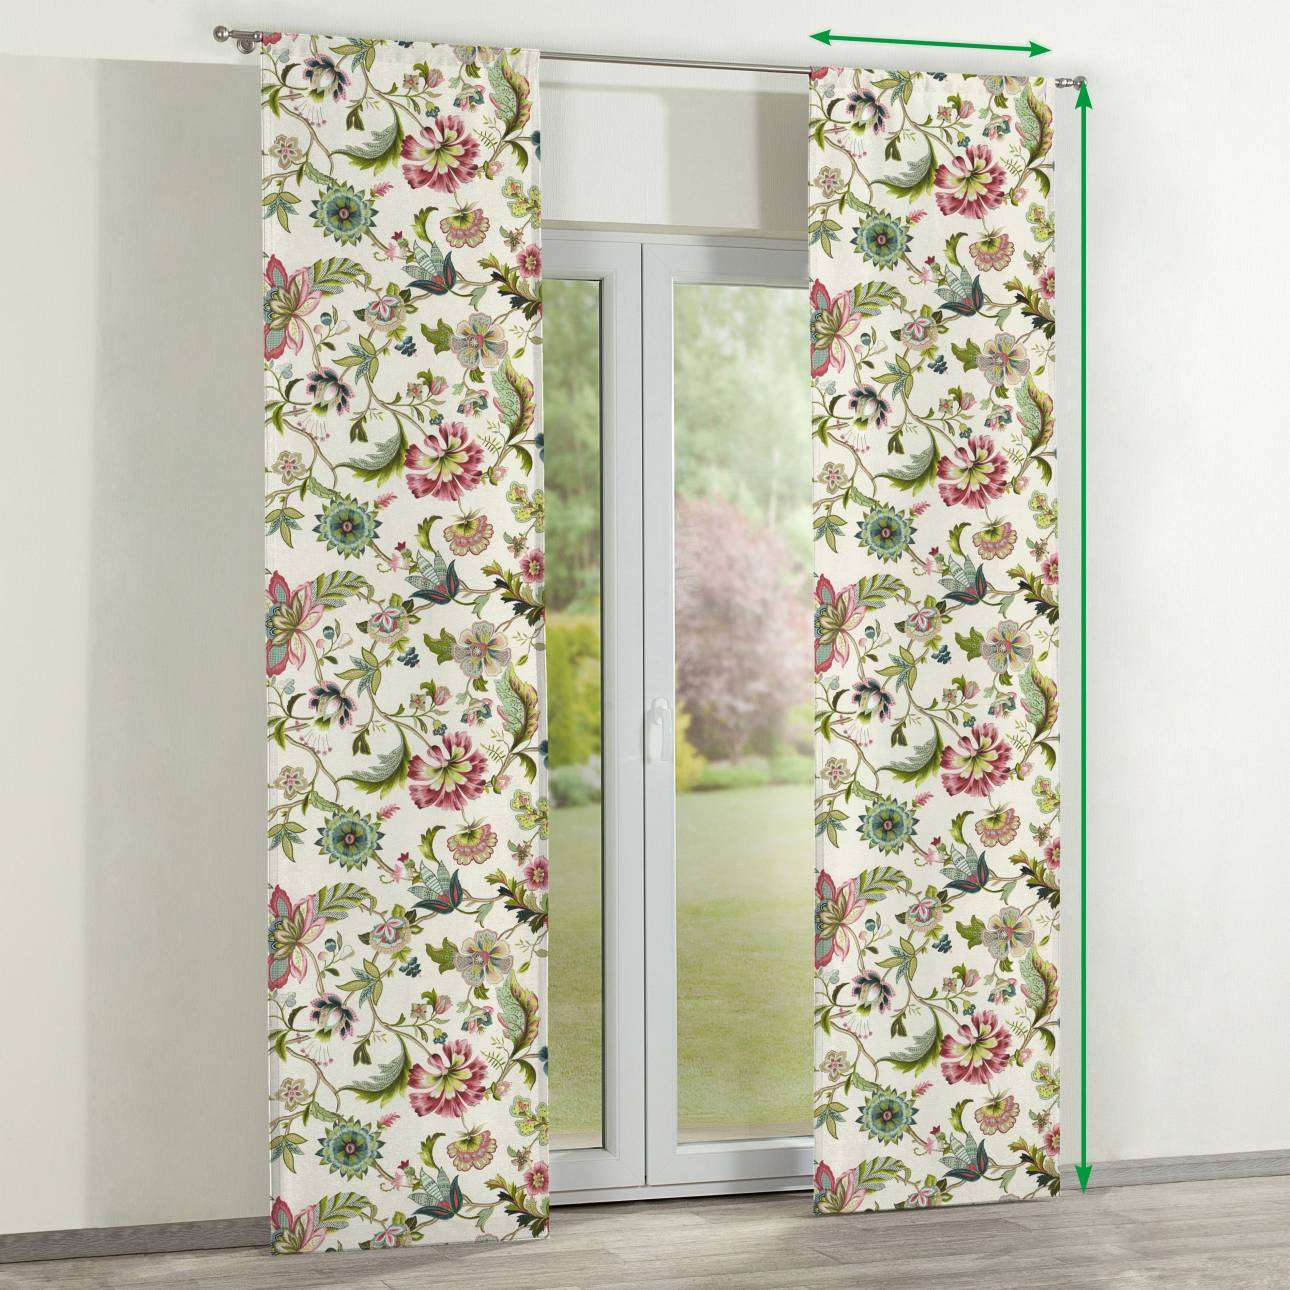 Slot panel curtains – Set of 2 in collection Londres, fabric: 122-00